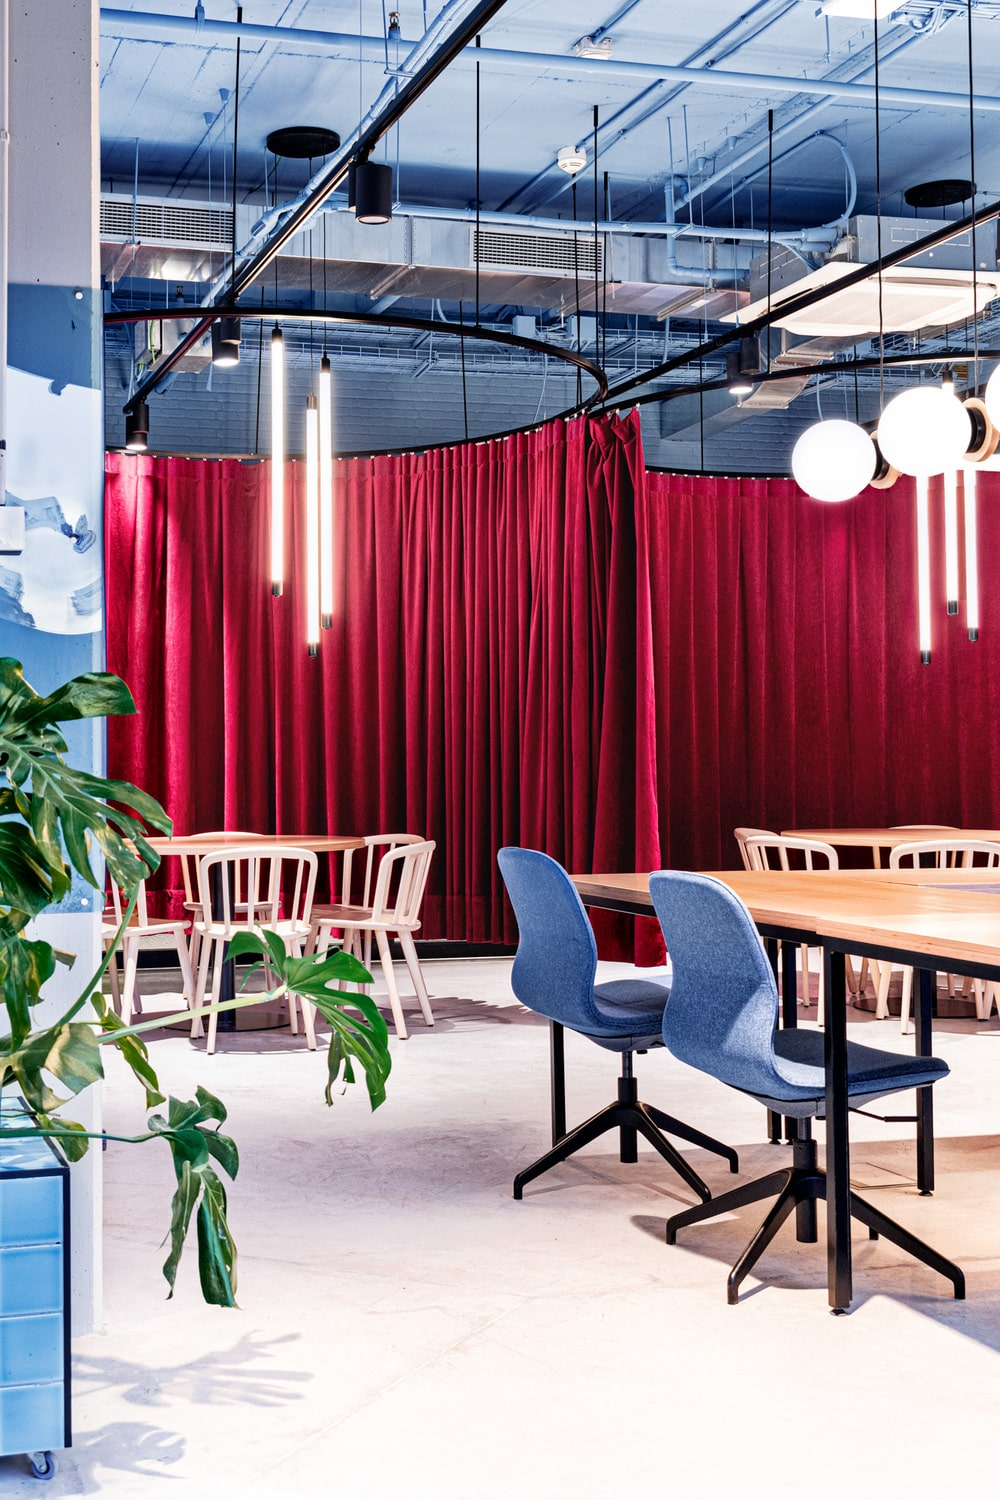 There are two curtained sections that has large round wooden tables paired with chairs and topped with lighting.